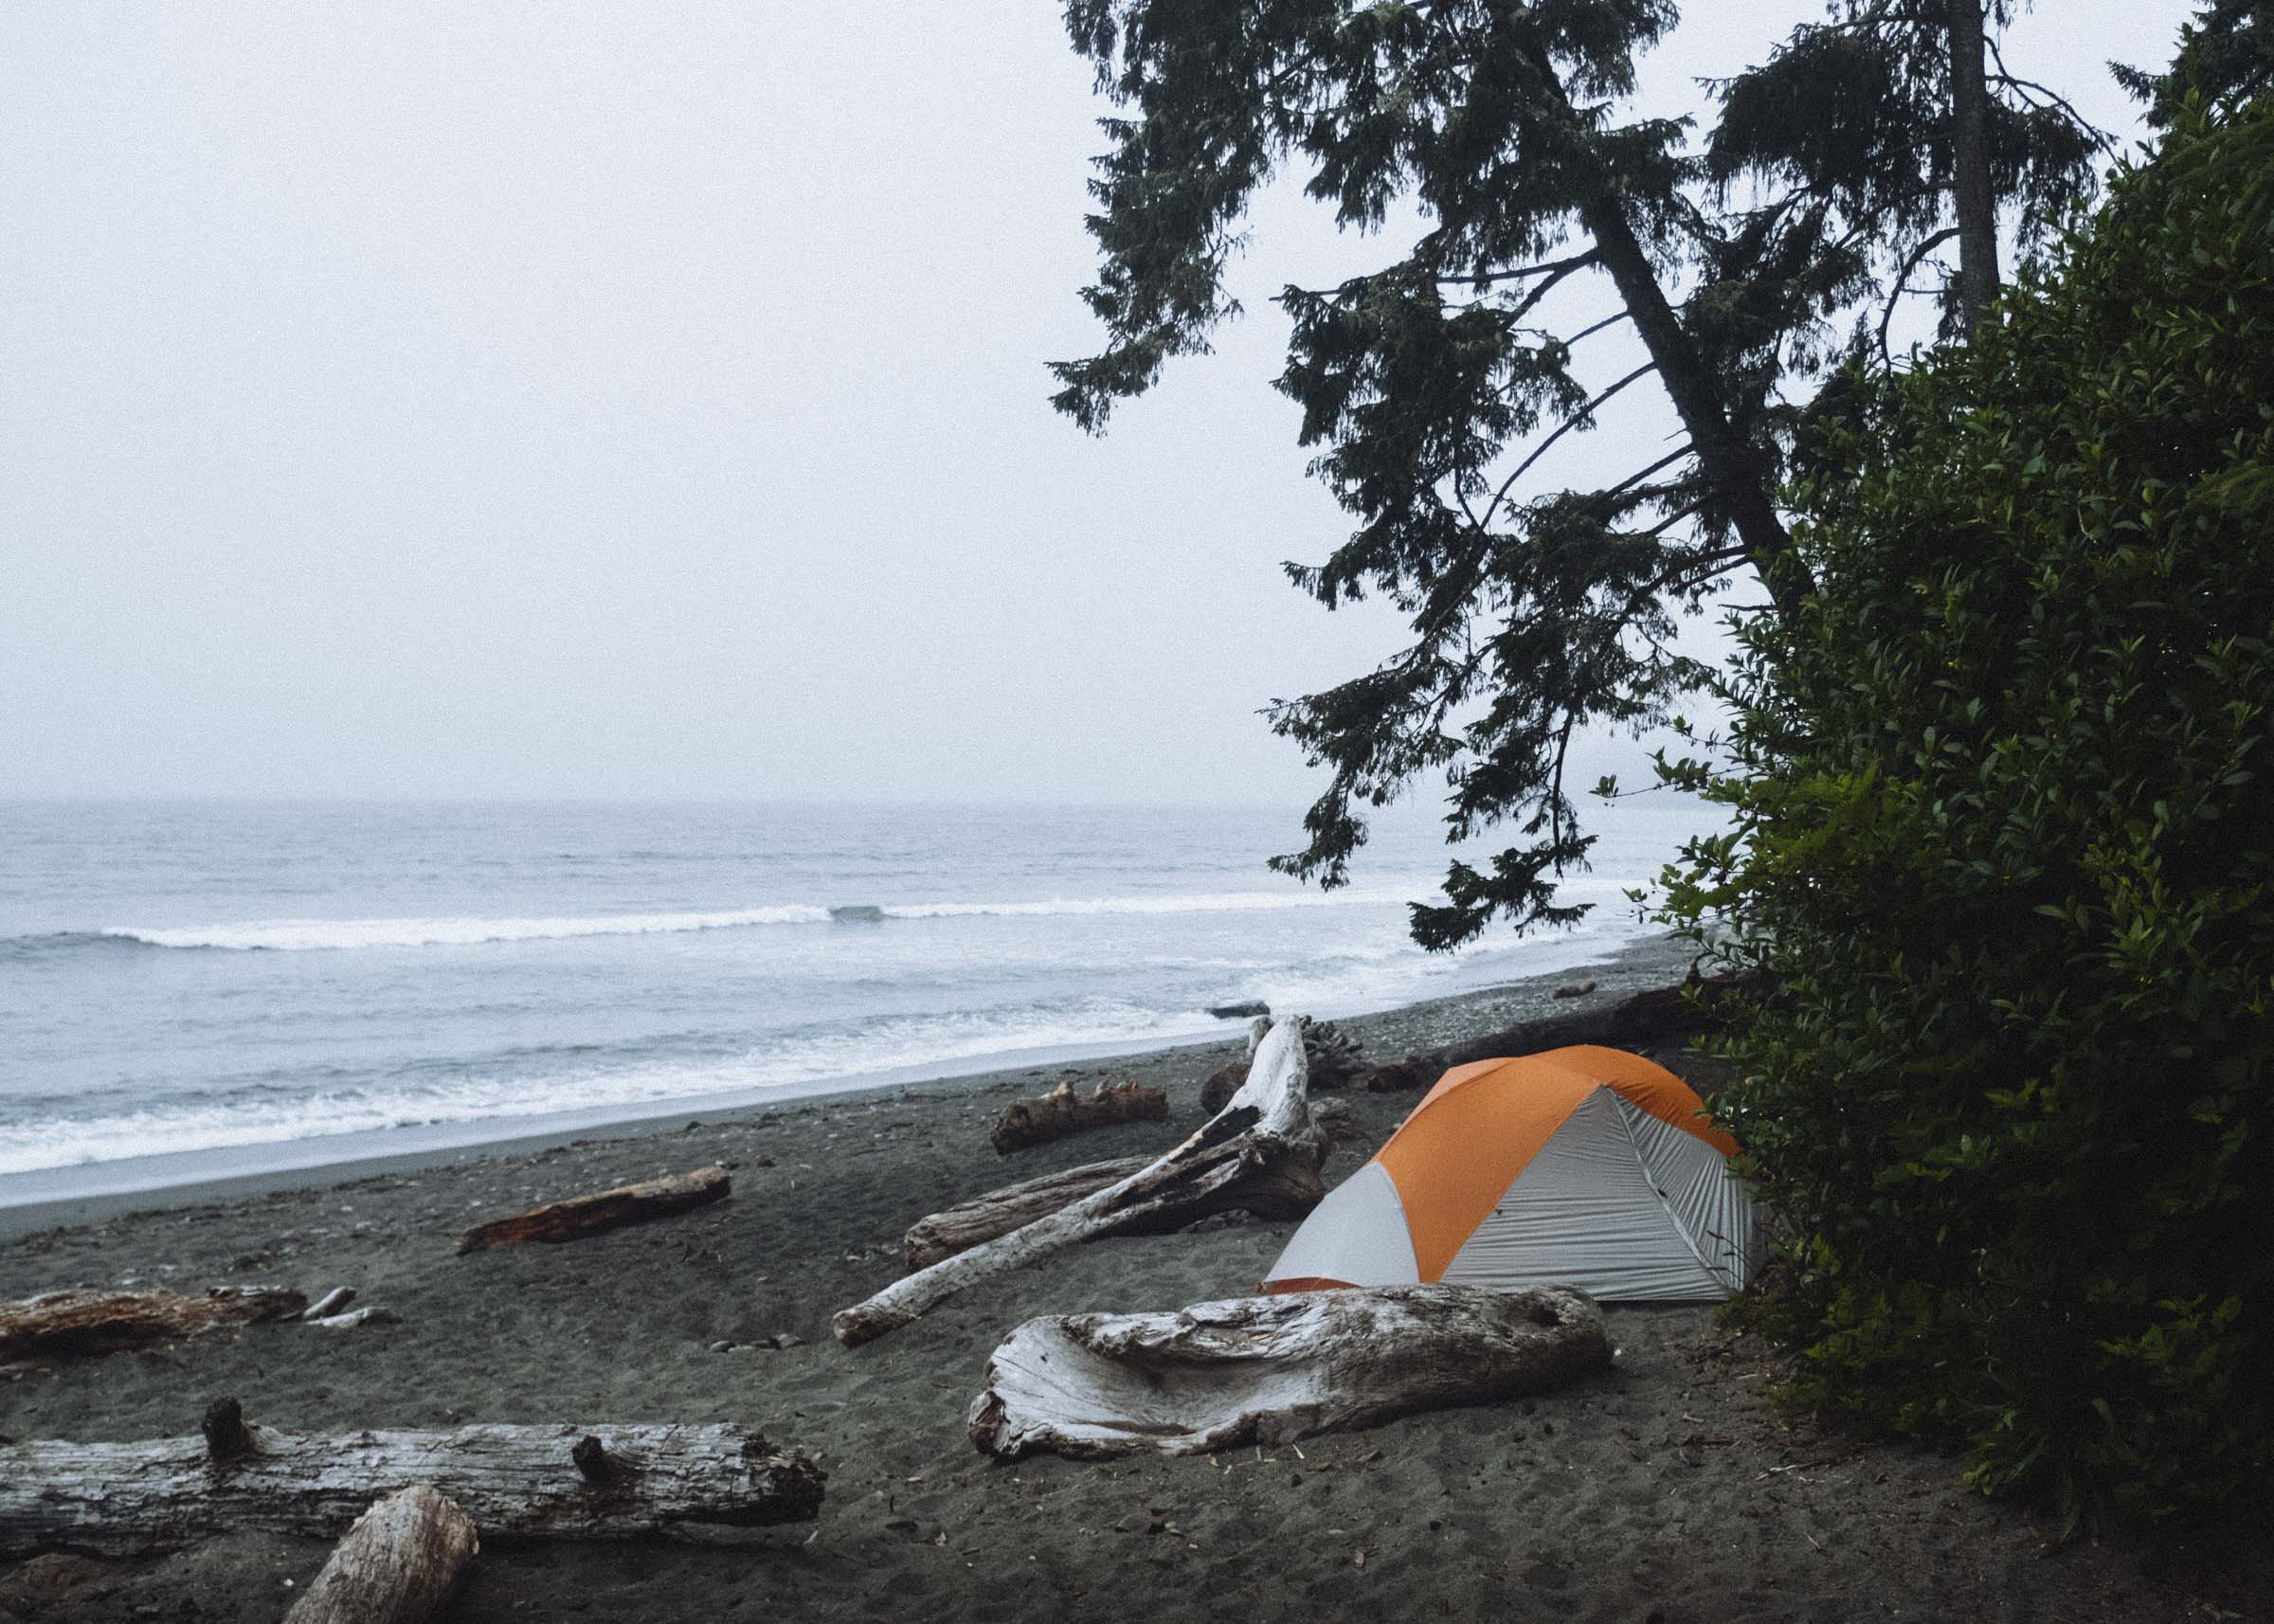 The Juan de Fuca Trail